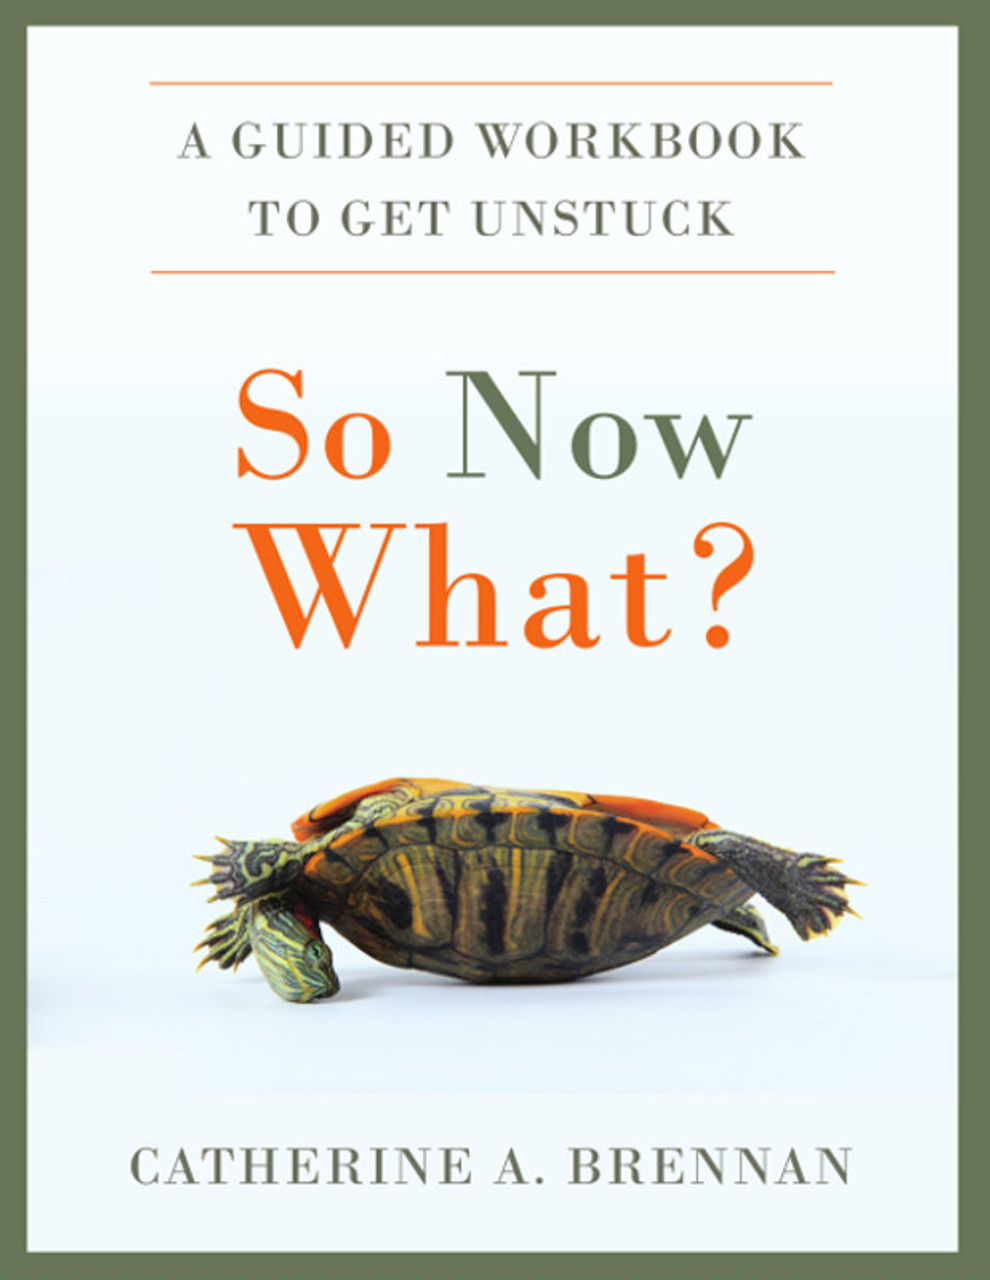 So Now What? A Guided Workbook to Get Unstuck